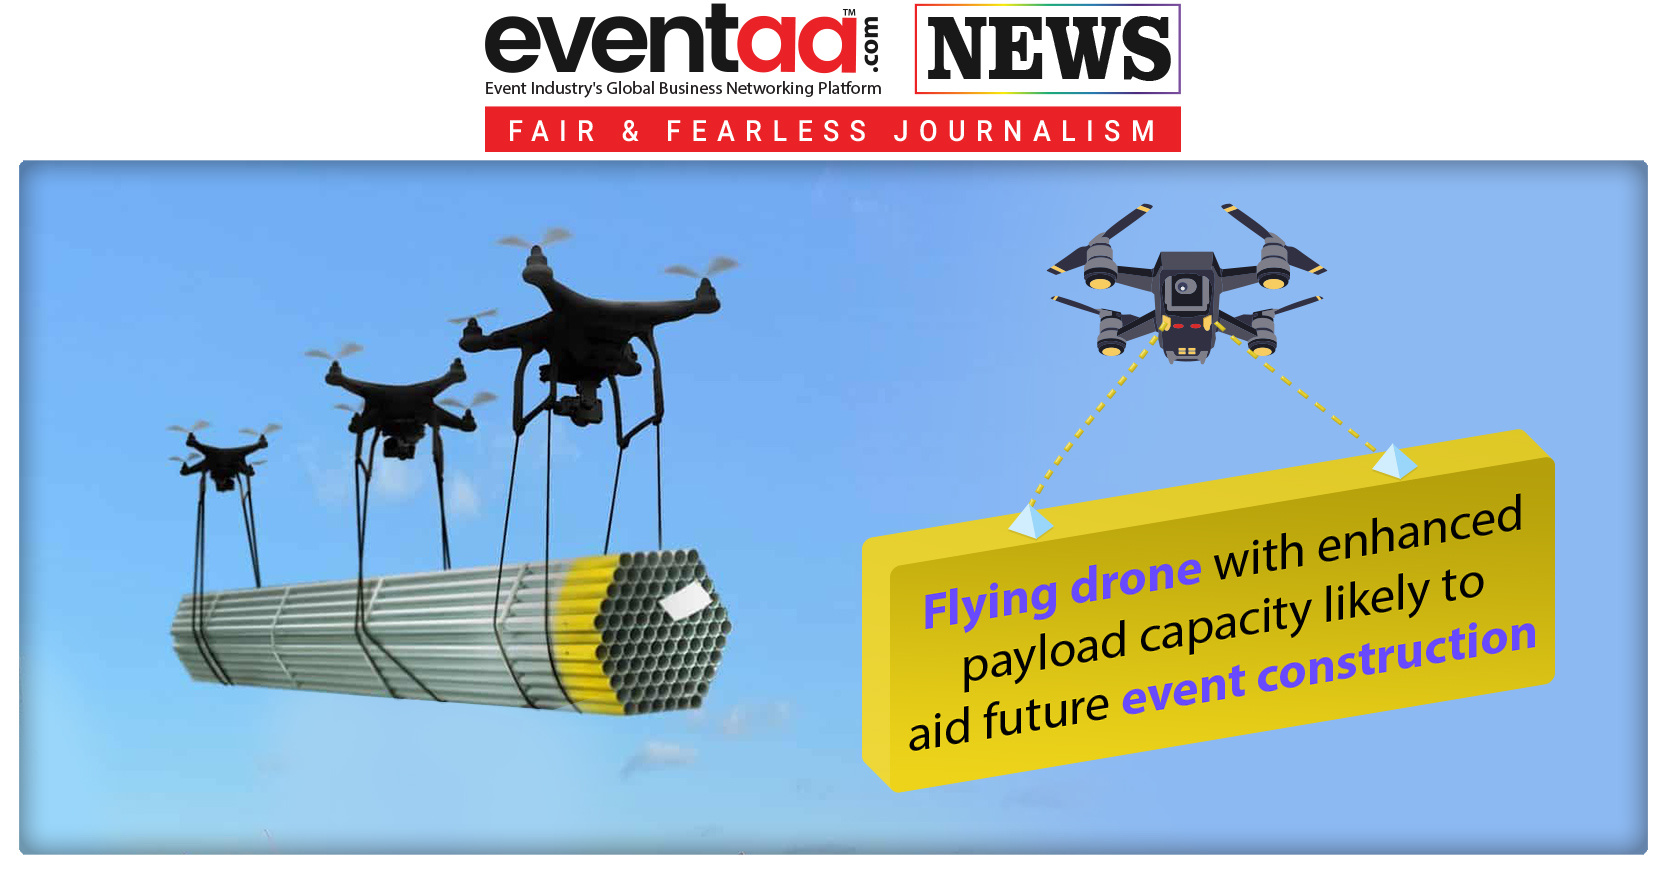 Flying Drone With Enhanced Payload Capacity Likely To Aid Future Event Construction